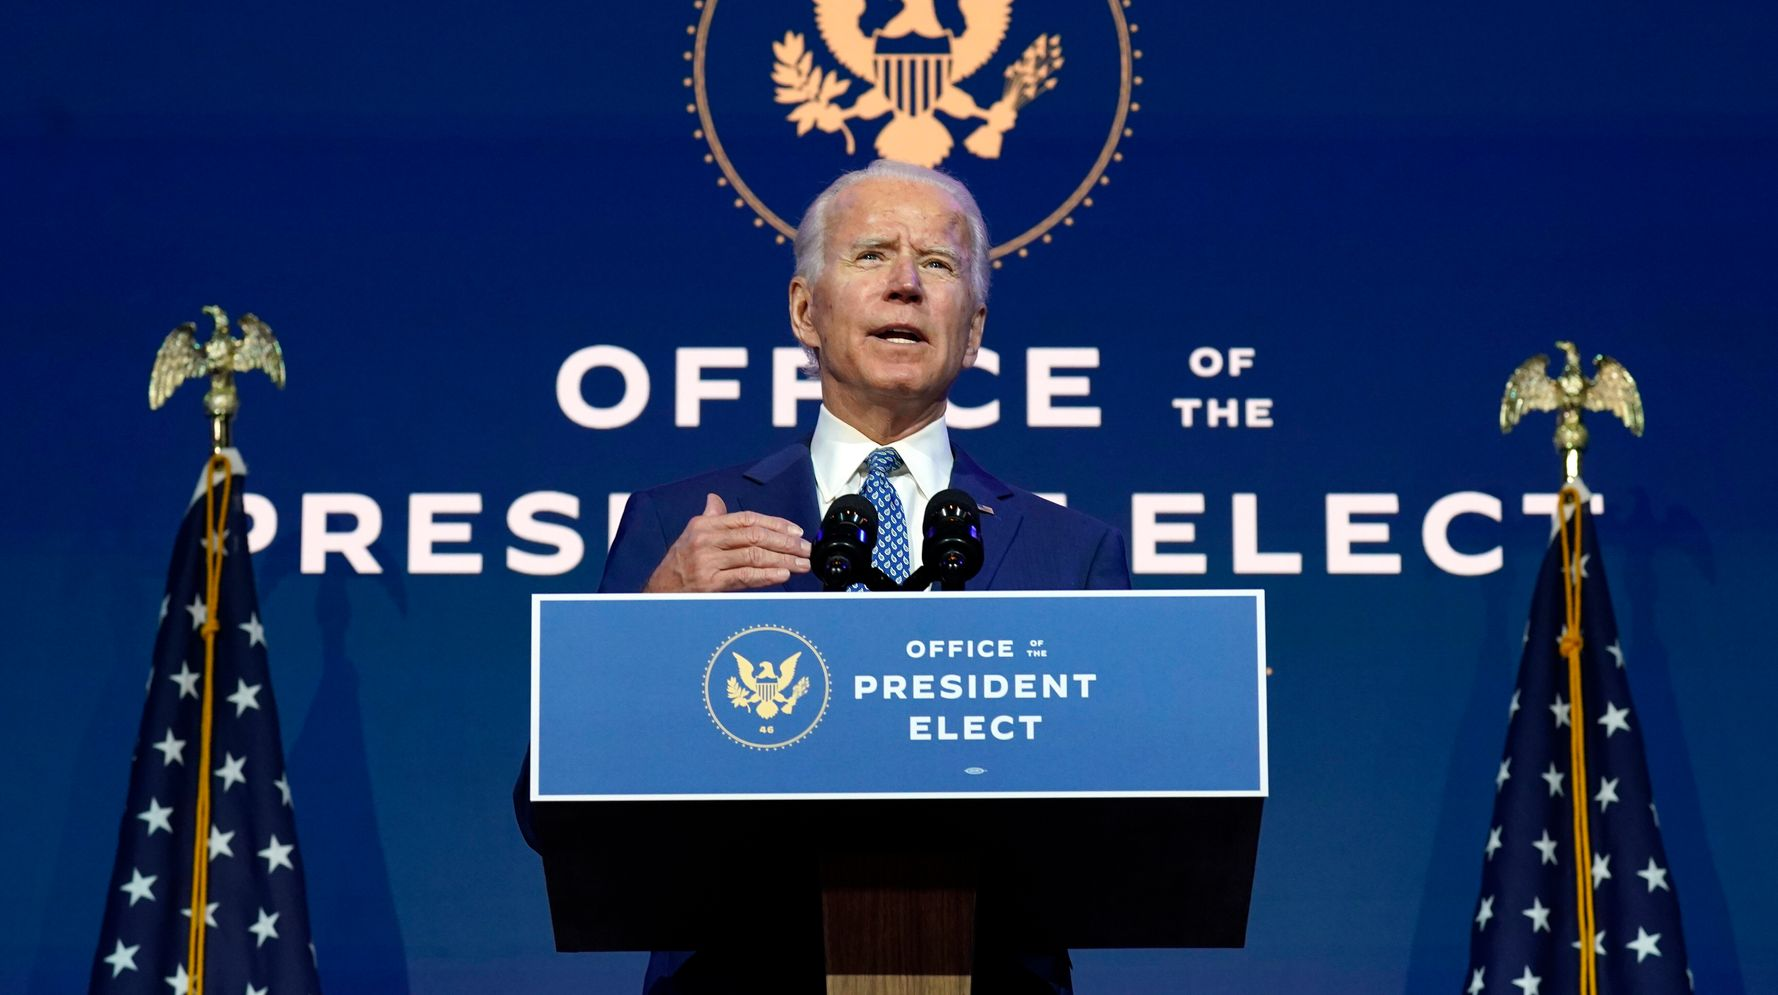 Biden Implores Americans To Wear Masks In First Remarks Since Declaring Victory